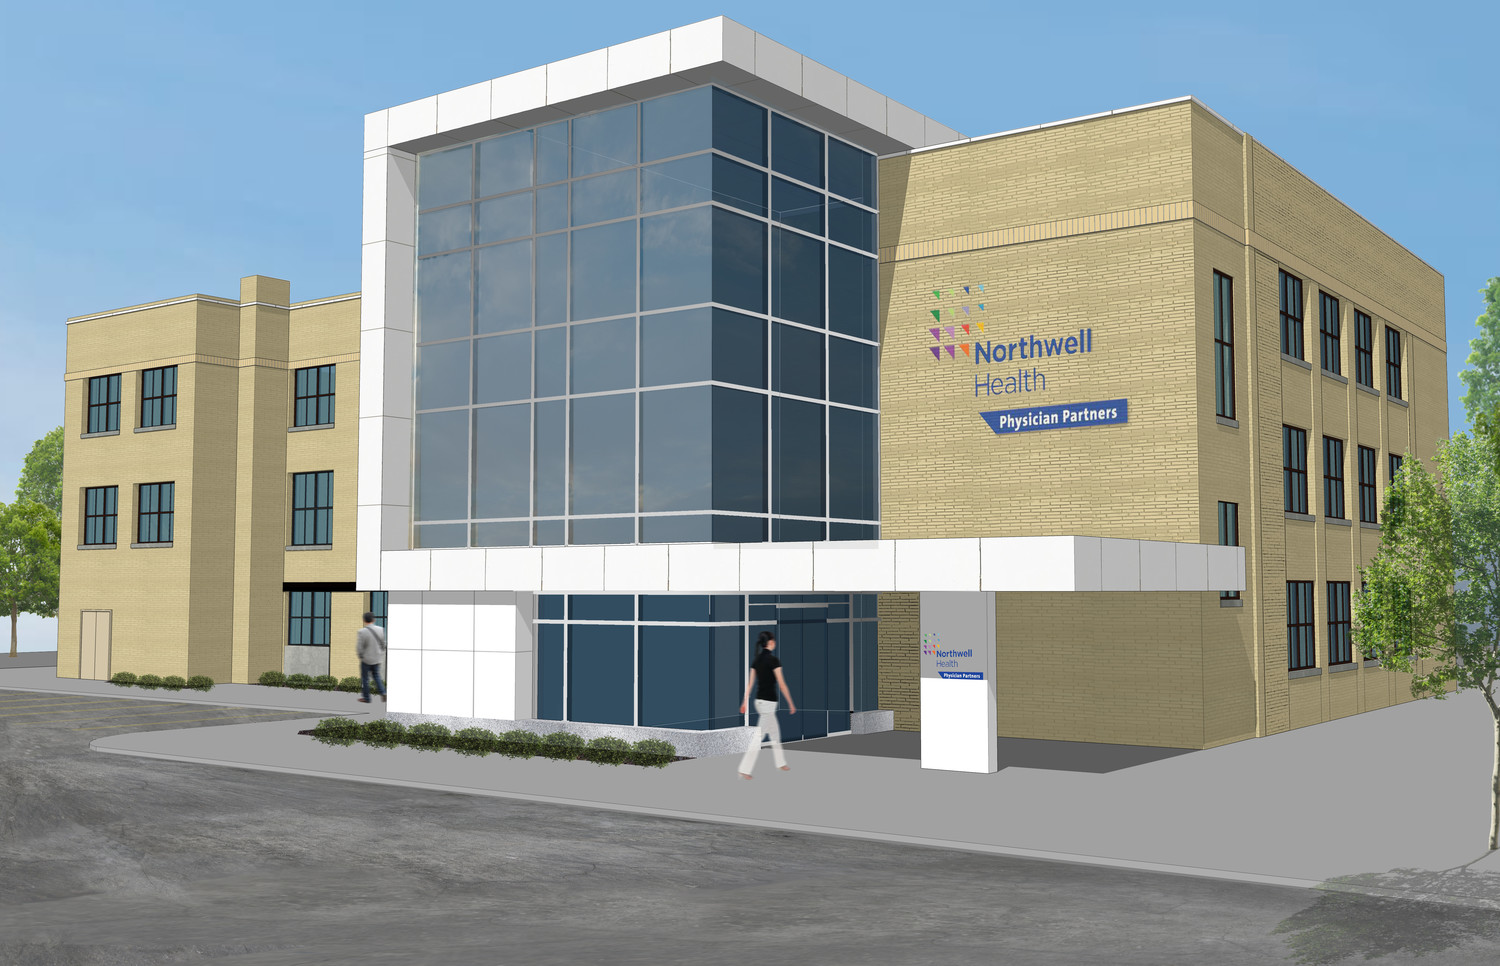 A rendering of the new Northwell facility in Lynbrook, which will be ready in 2018.